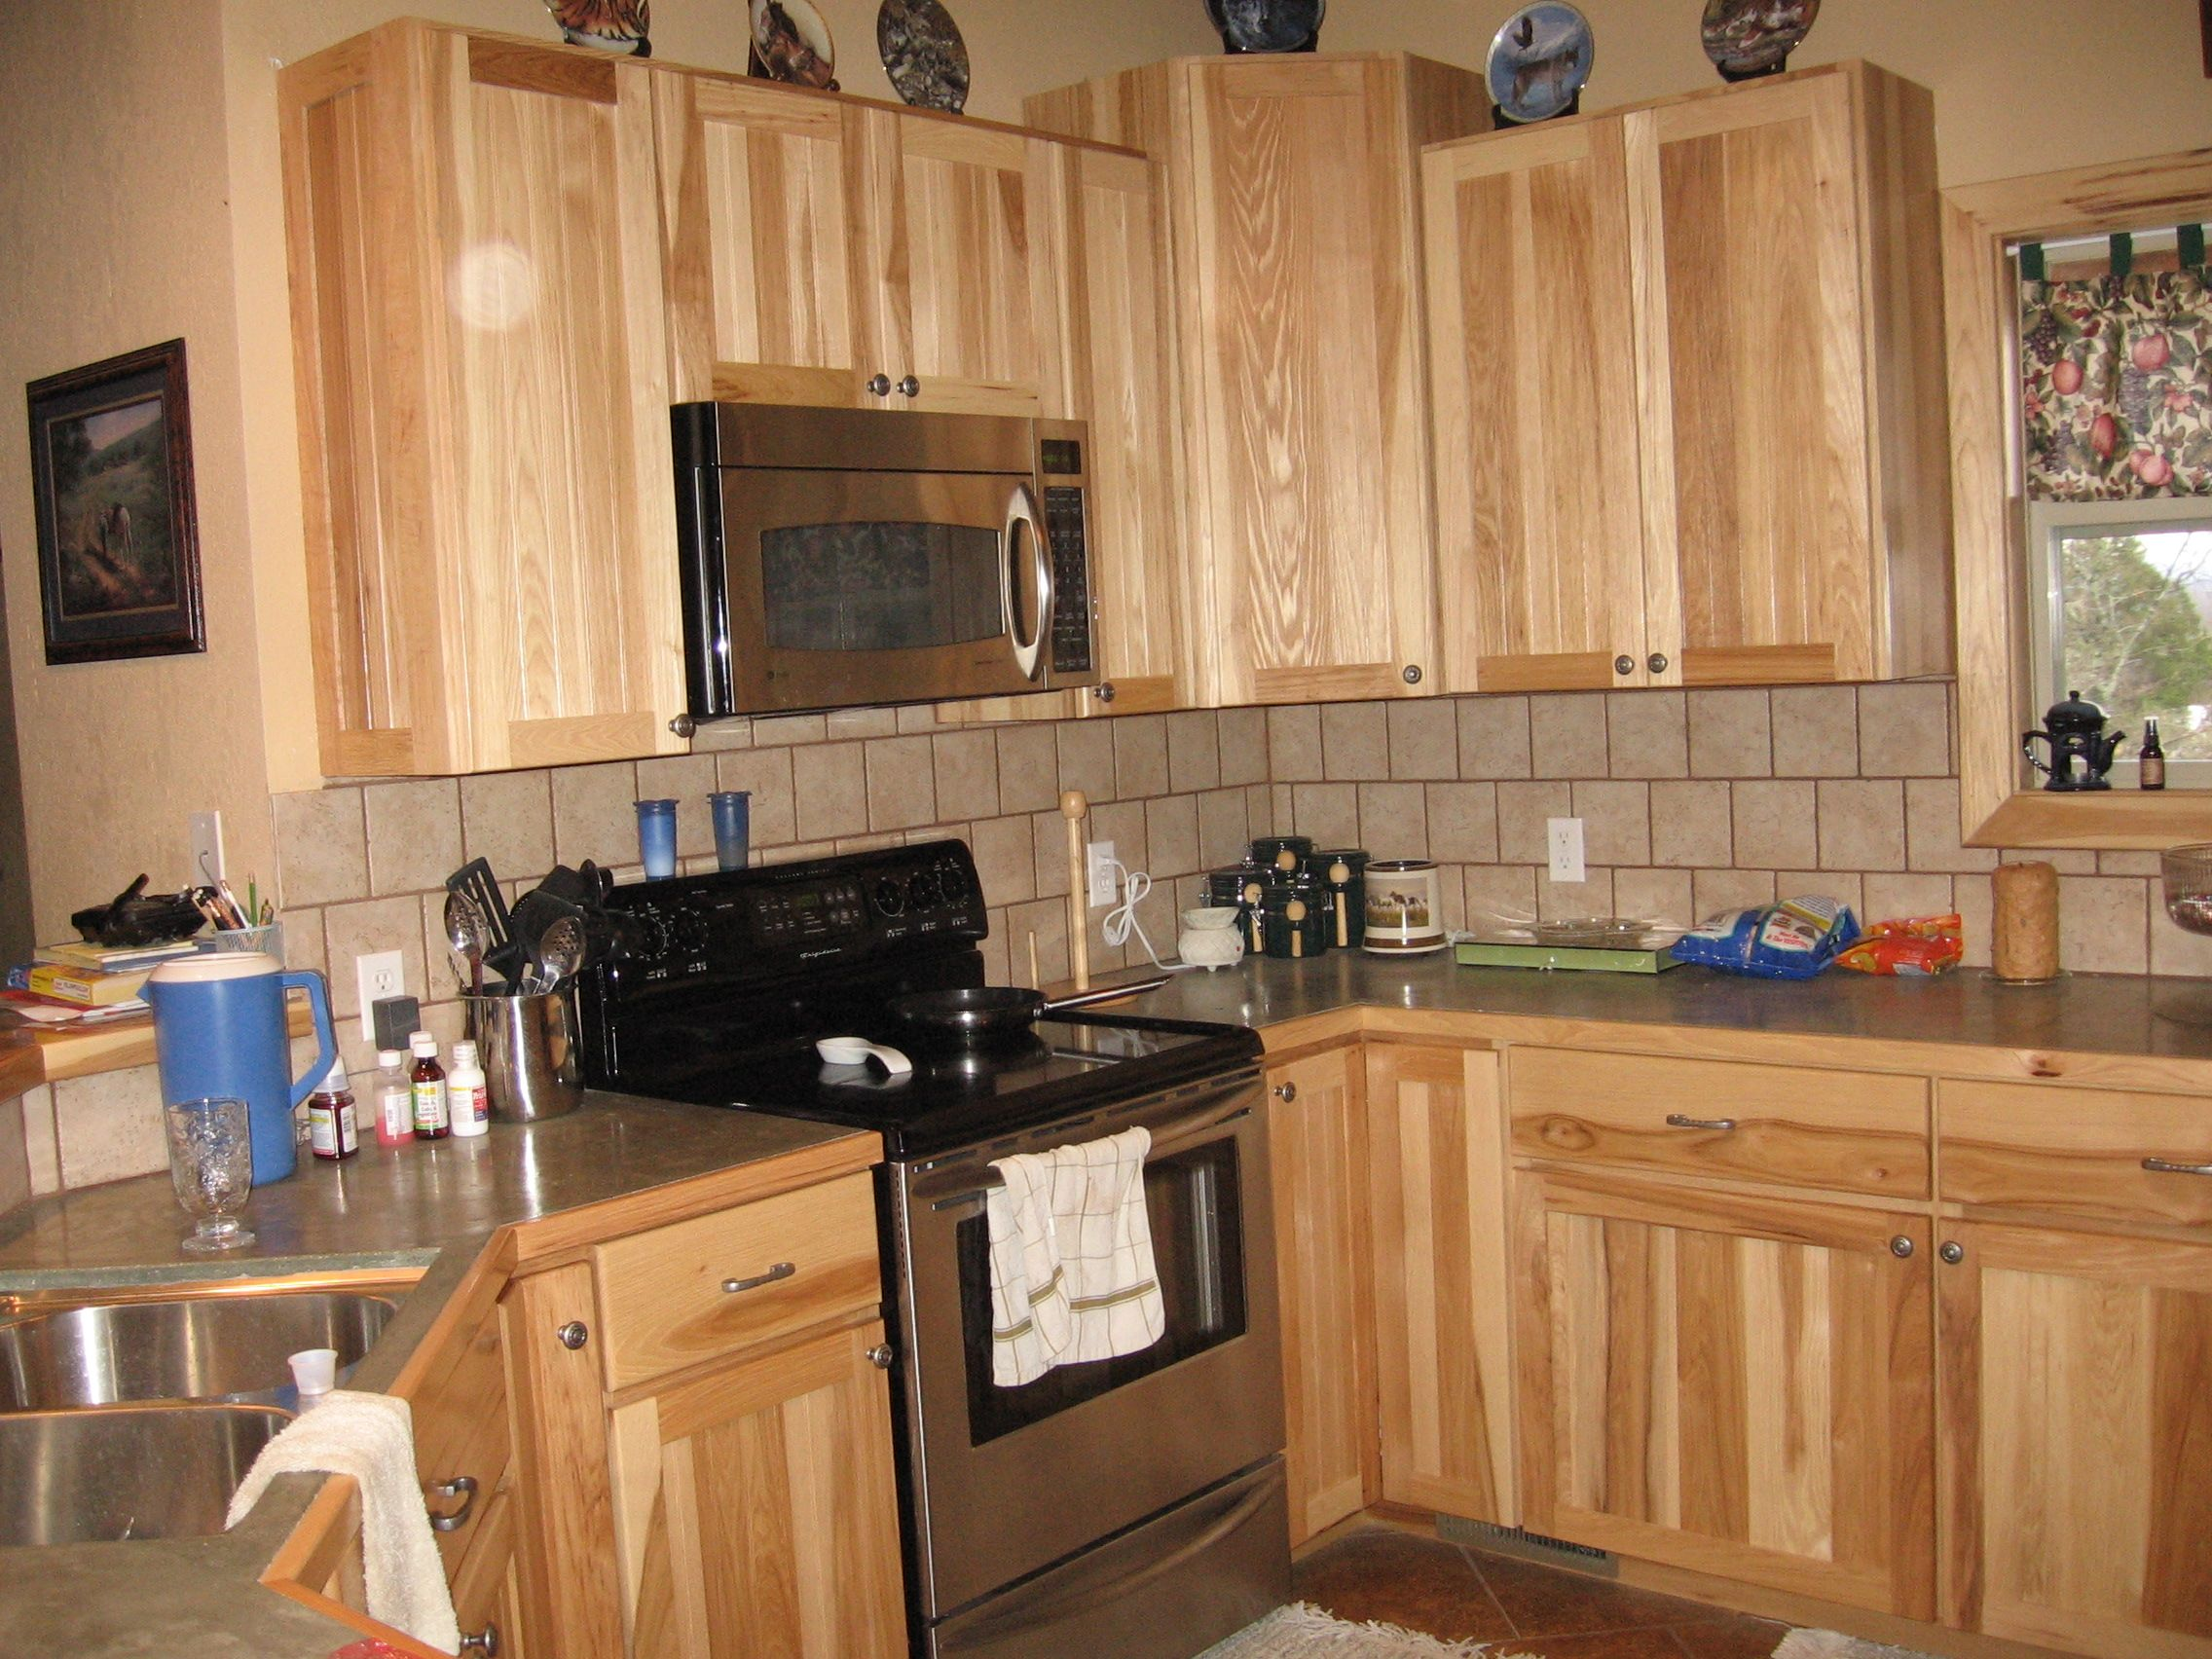 hampton natural hickory kitchen cabinets hampton bay kitchen cabinets Hickory Kitchen Cabinets Inc Al Other Custom Woodworking